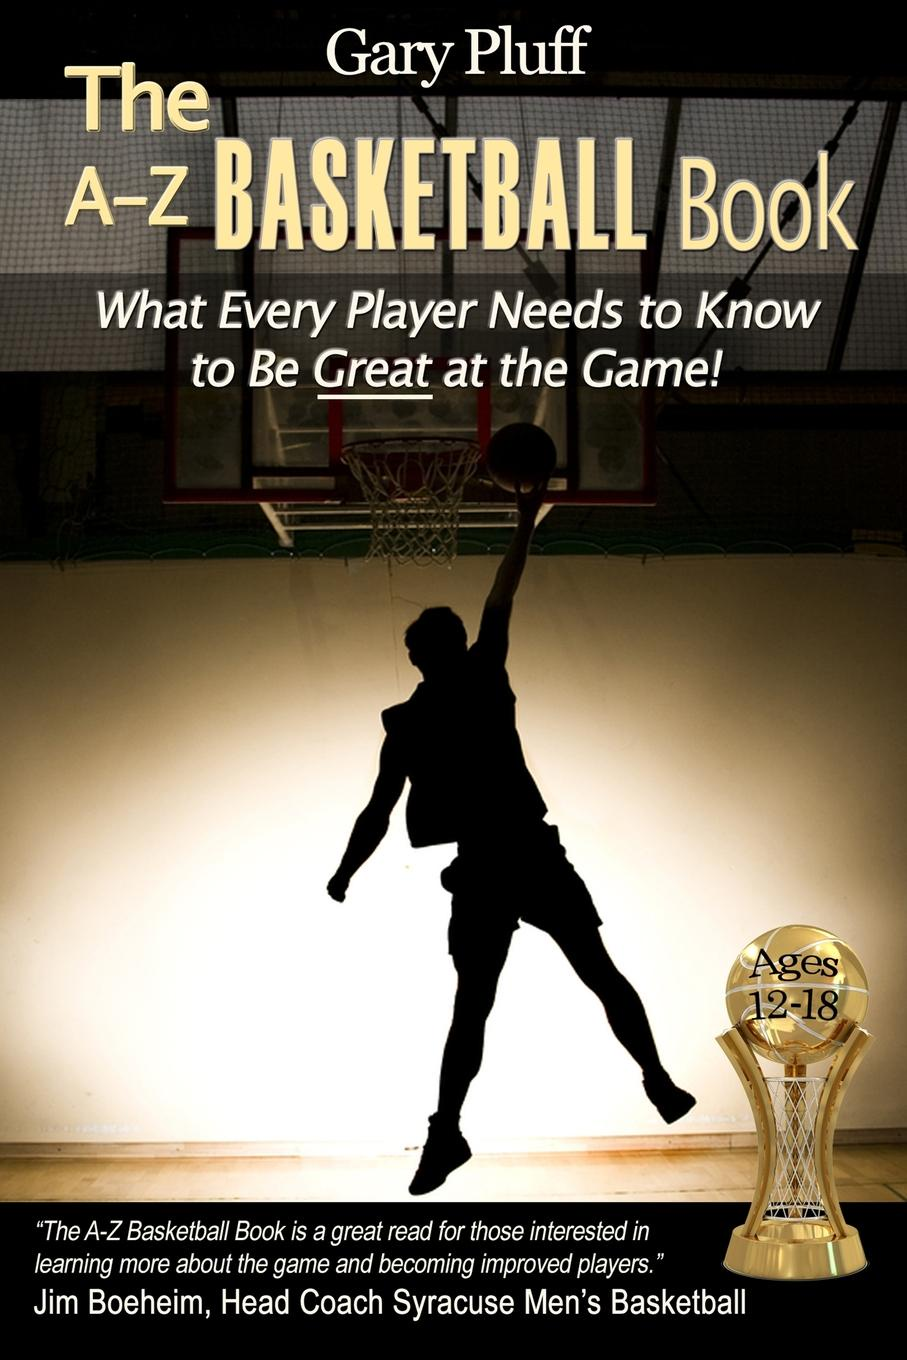 Gary E. Pluff The A-Z Basketball Book. What Every Player Needs to Know to Be Great at the Game! morrison gertrude w the girls of central high at basketball or the great gymnasium mystery